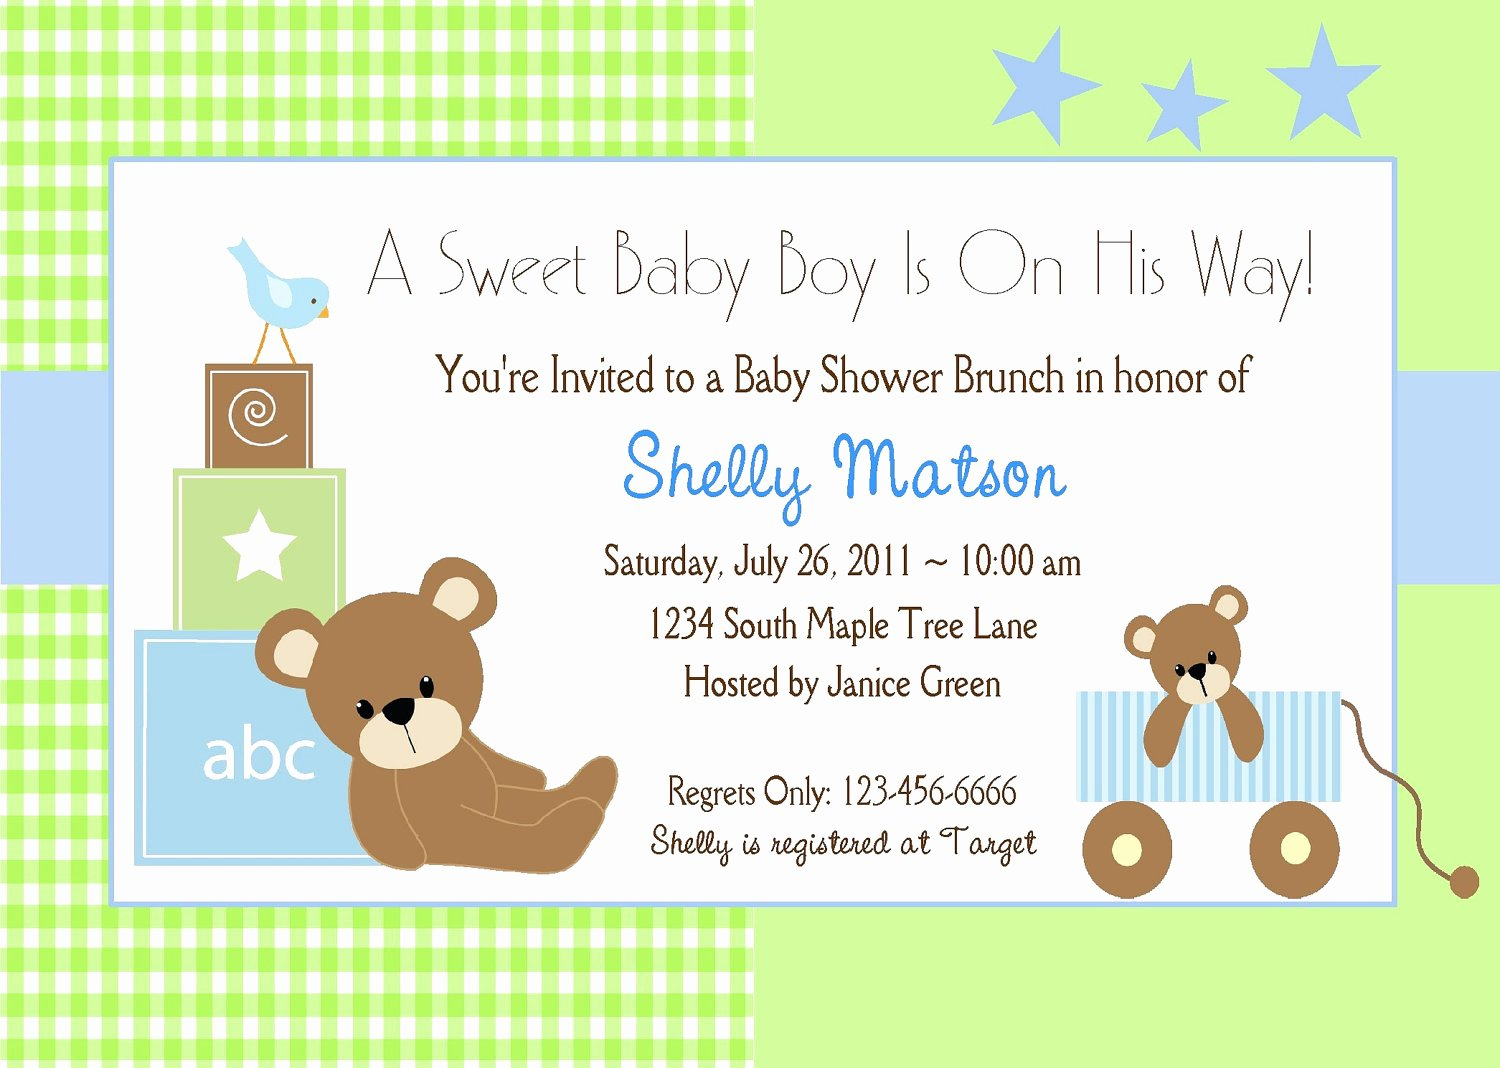 Baby Boy Invitations Free Elegant Free Baby Boy Shower Invitations Templates Baby Boy